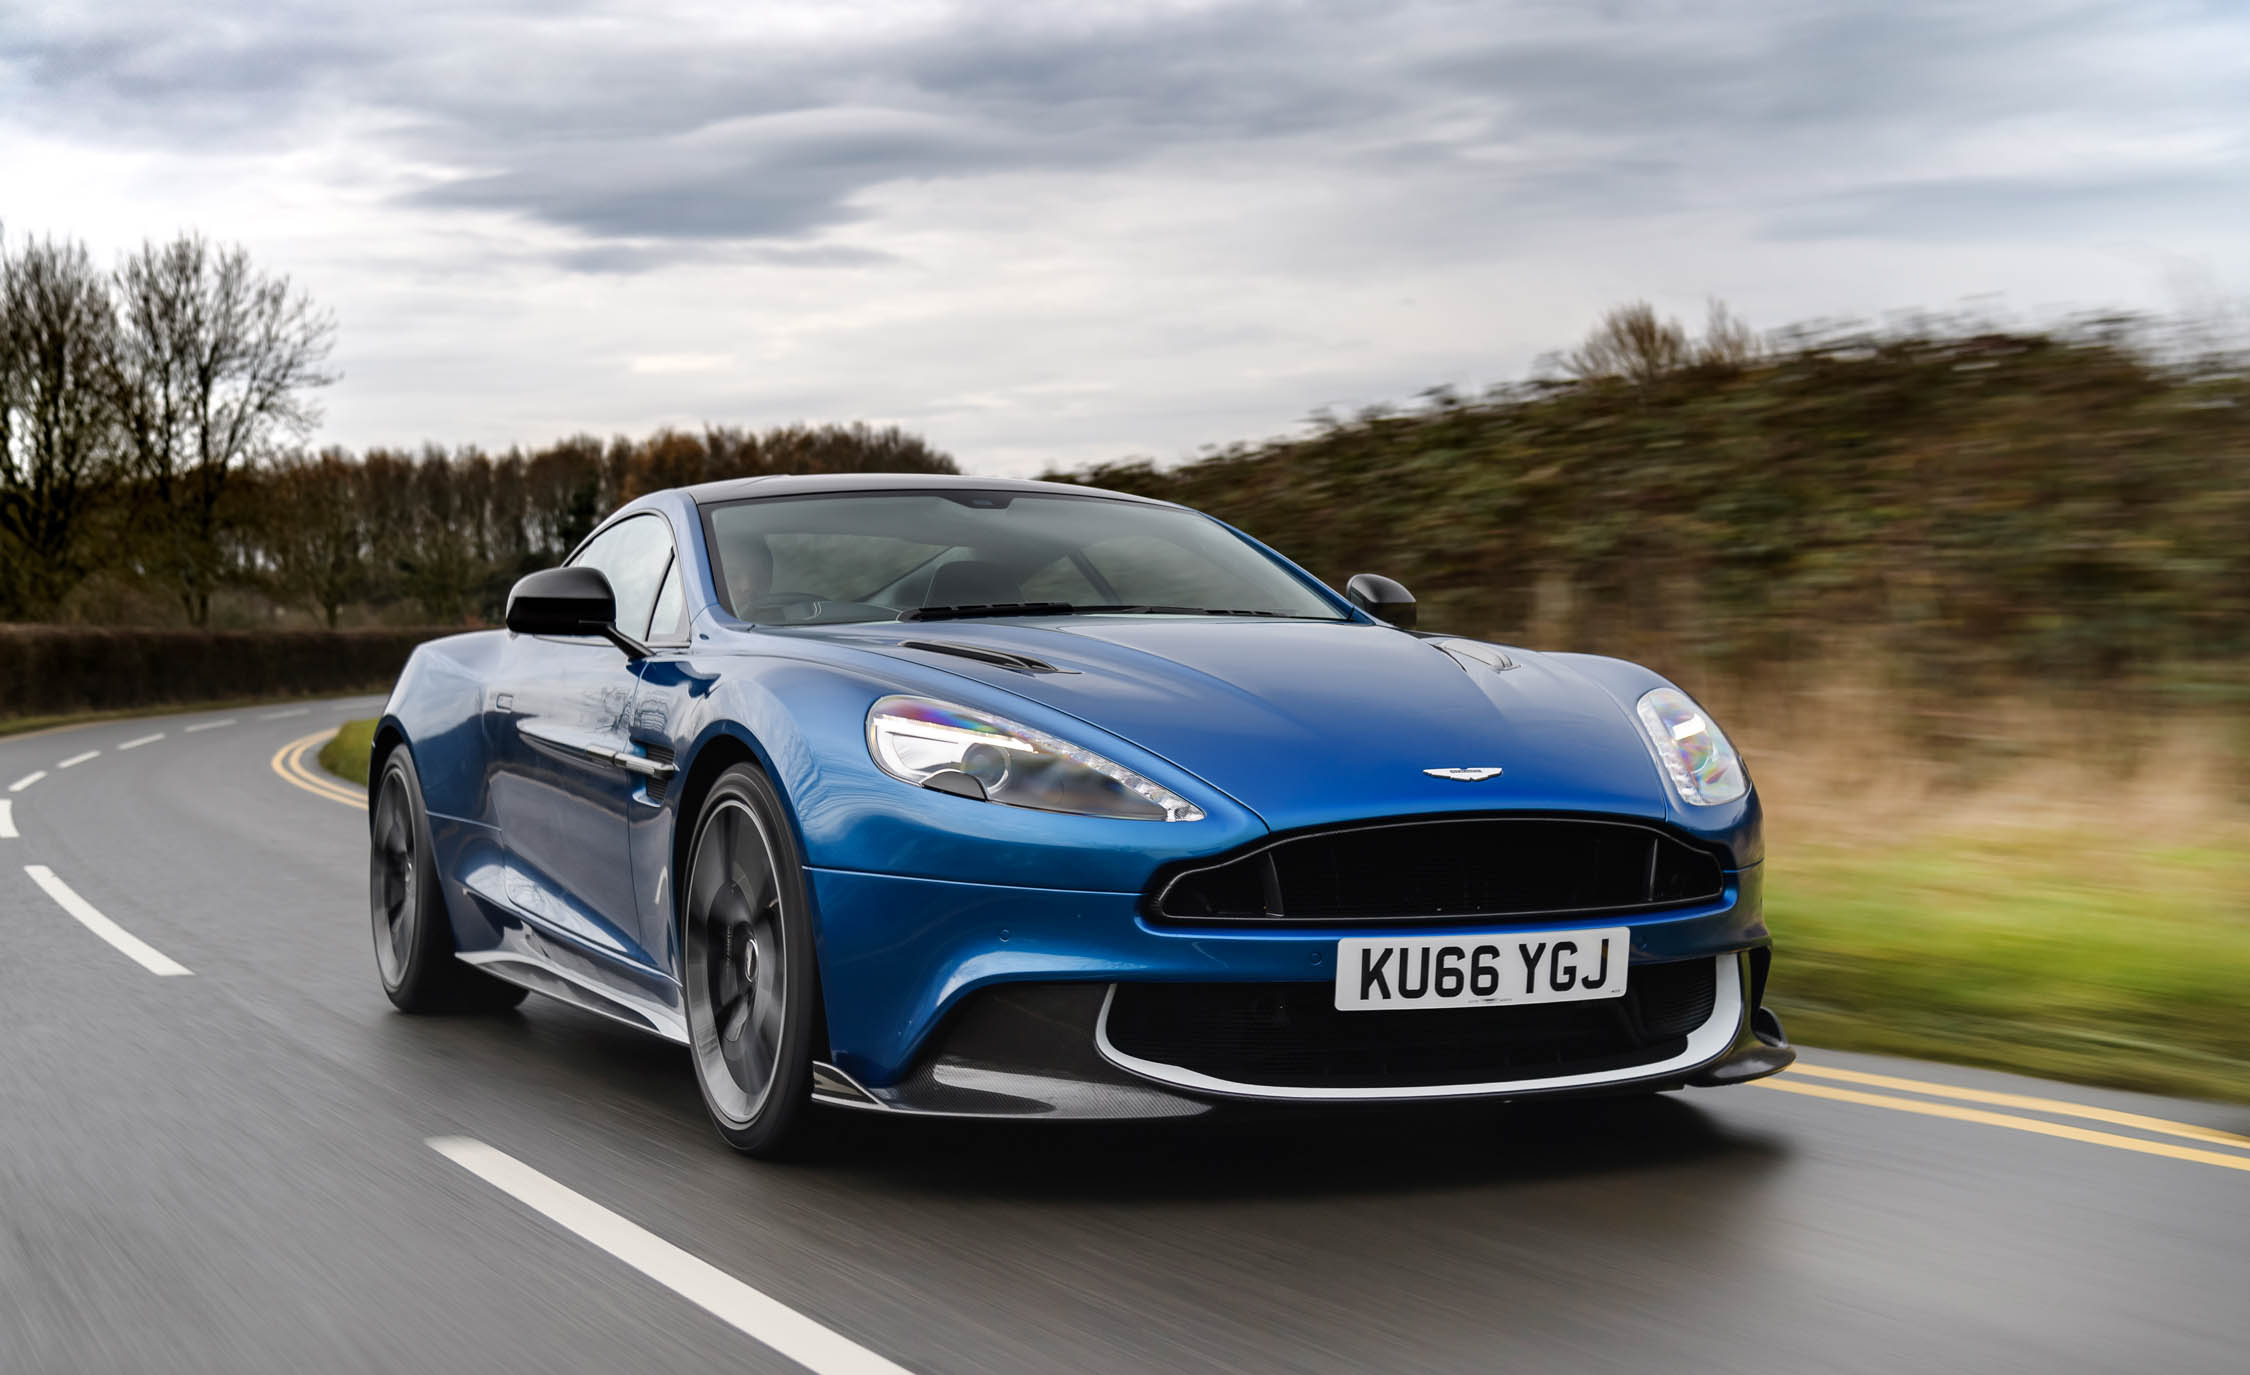 2017 Aston Martin Vanquish S | Cars Exclusive Videos and ...